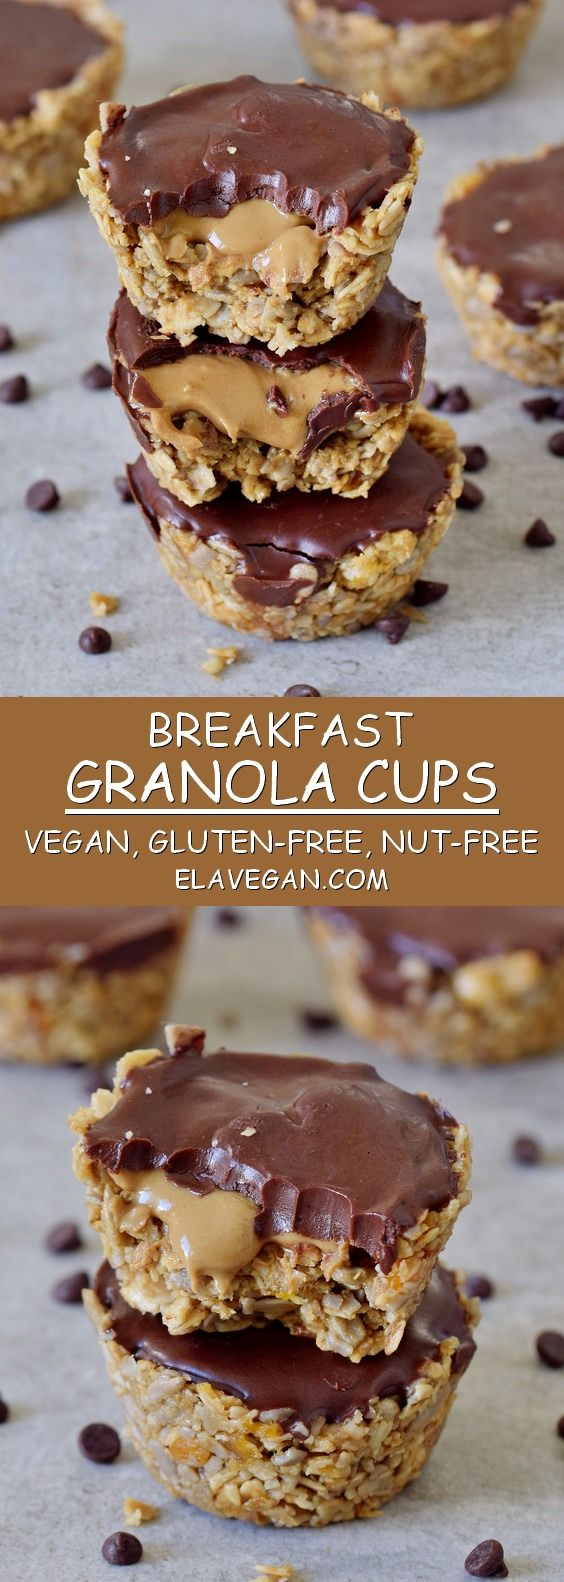 These breakfast granola cups are super easy to make in just a few steps! You'll only need 6 ingredients in total! The recipe is vegan, gluten-free, and nut-free (no peanut butter!)! These cups are perfect as a breakfast, dessert or snack! #vegan #glutenfree #breakfast #granola #cups #dessert | elavegan.com #glutenfreebreakfasts